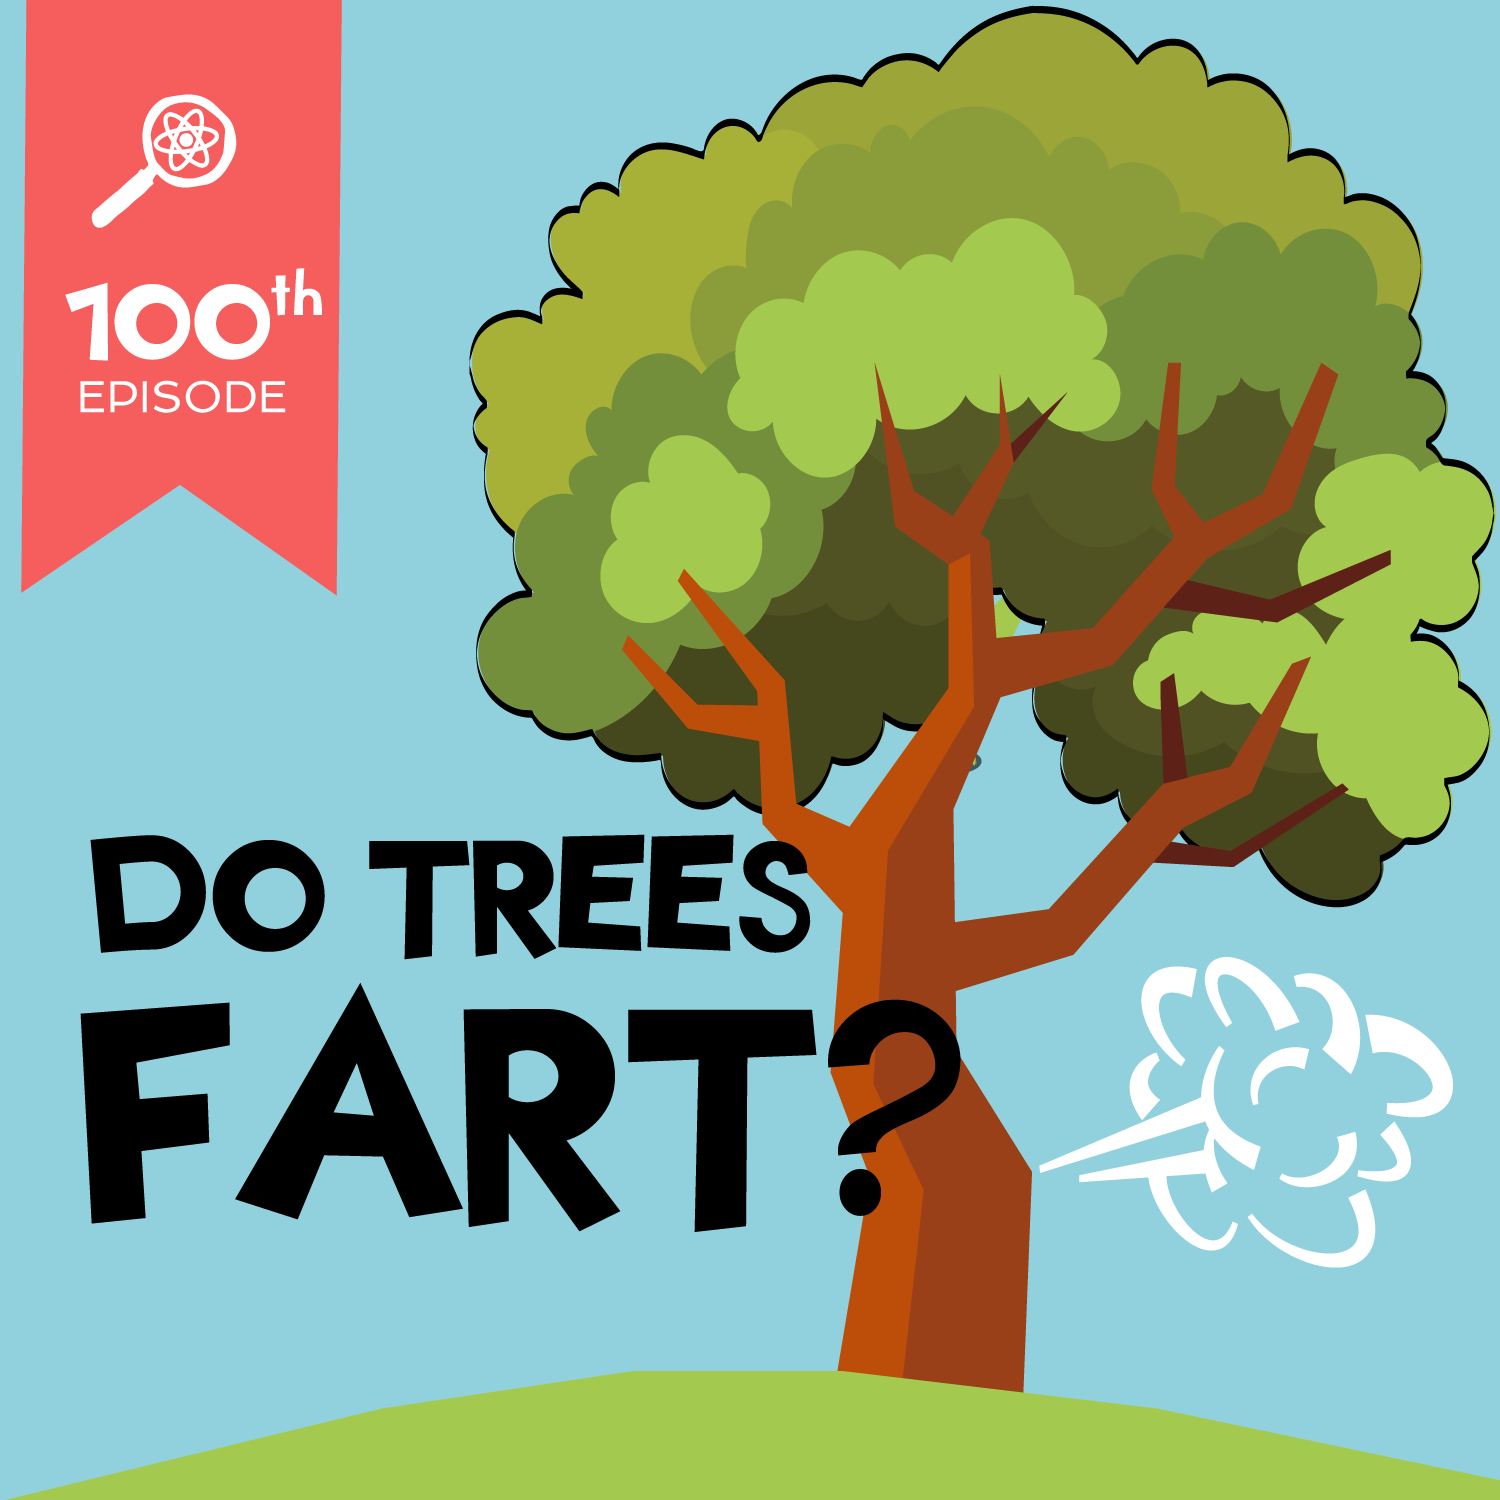 Do Trees Fart?